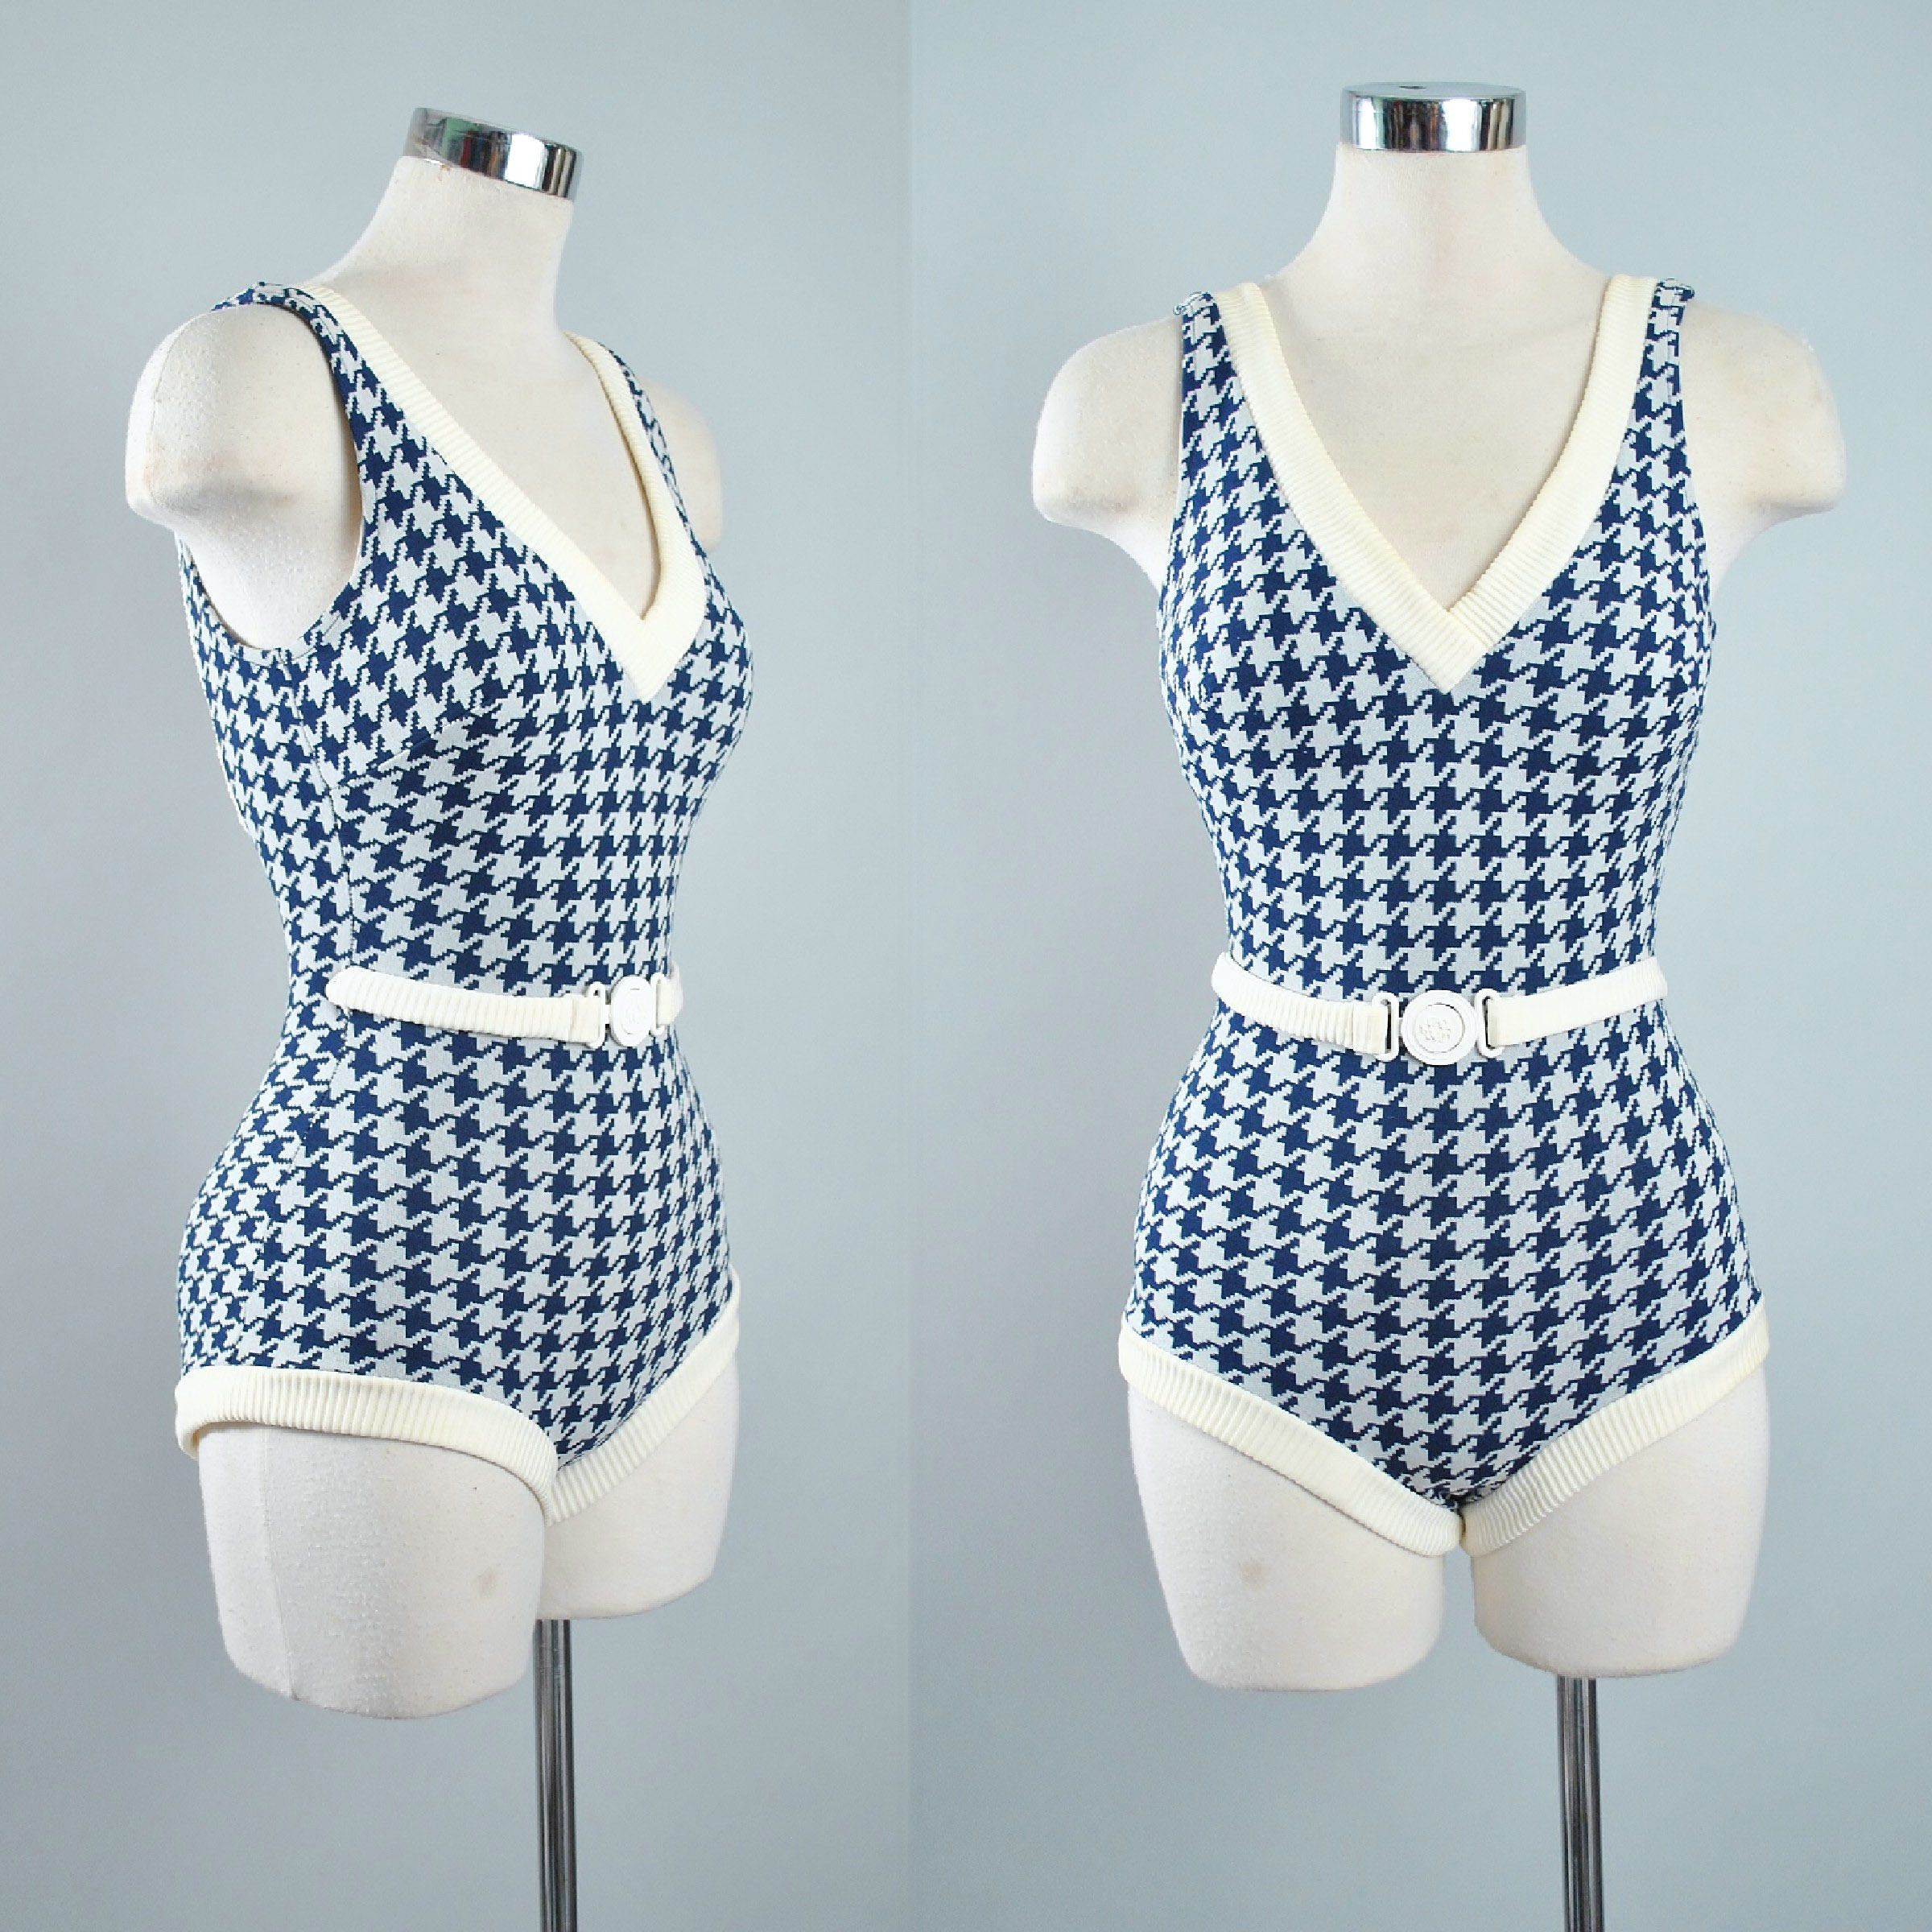 7096d2e26d5 Vintage 60s 70s PLAYSUIT Romper Swimsuit   HOUNDSTOOTH Navy Blue Nautical  Belted Sun Suit Mini Shorts Pinup Beach Swimwear XS Small Medium by ...